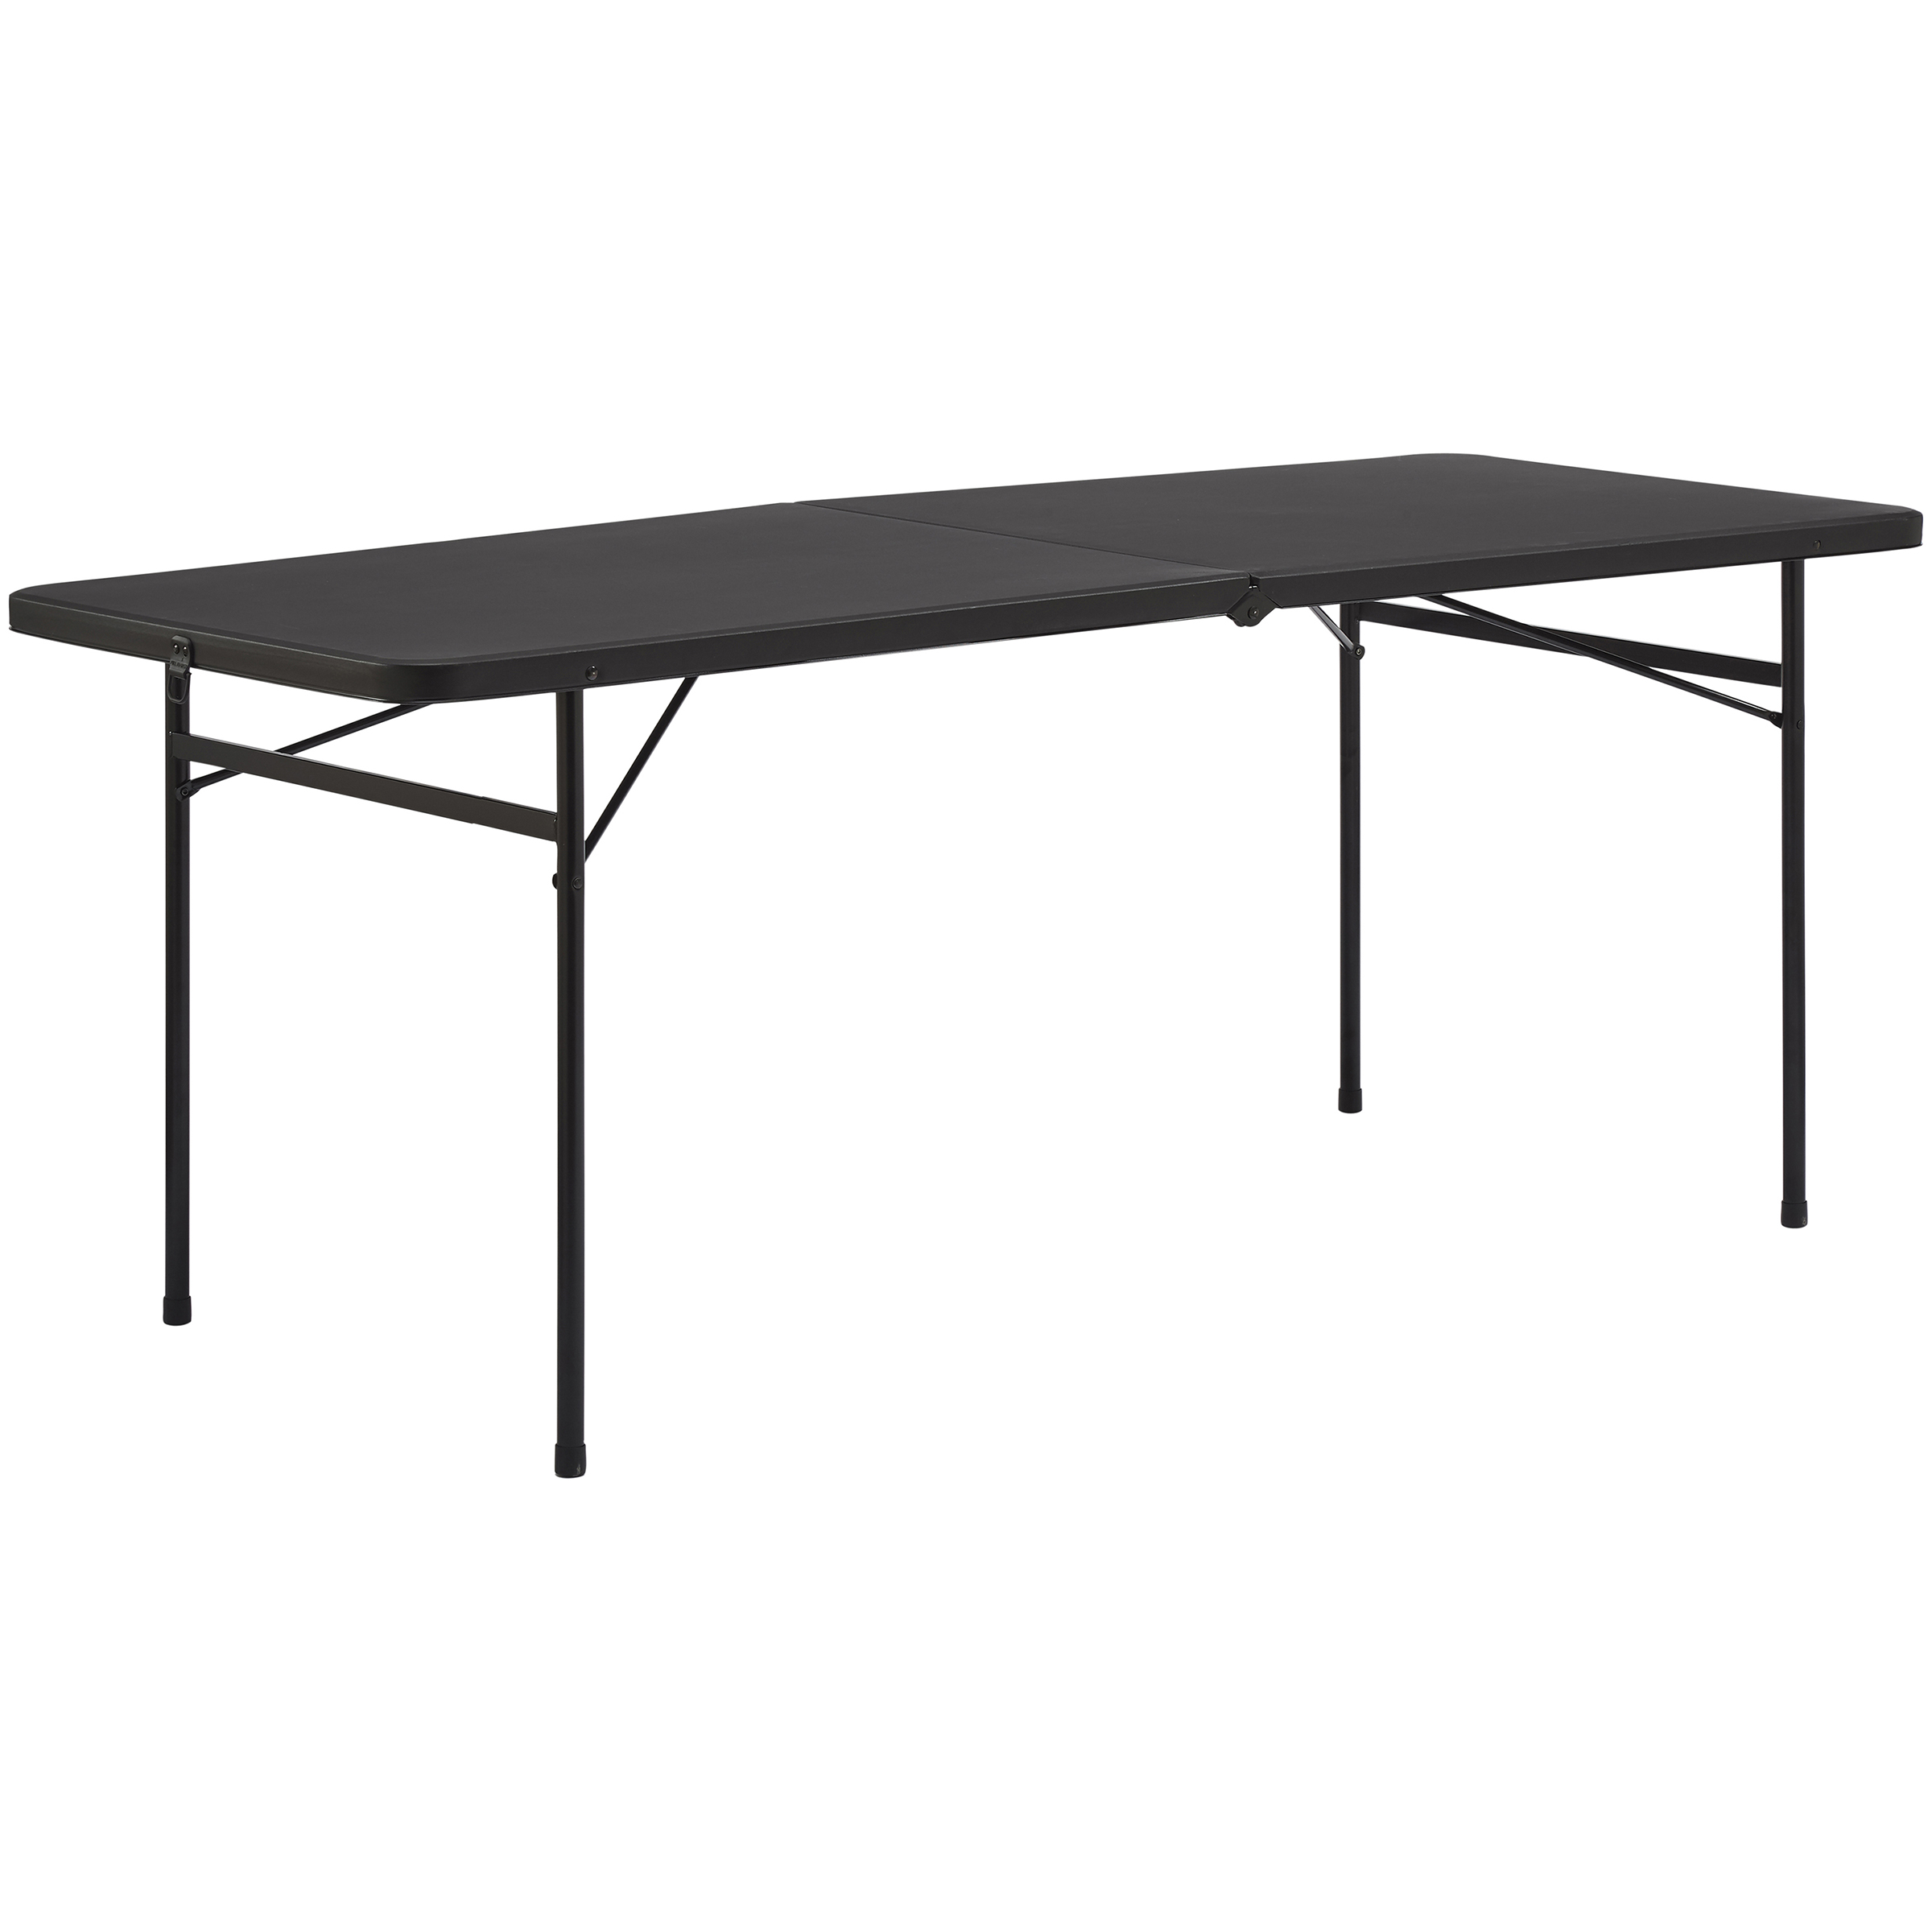 Mainstays 6-Ft. Bi-Fold Plastic Folding Table